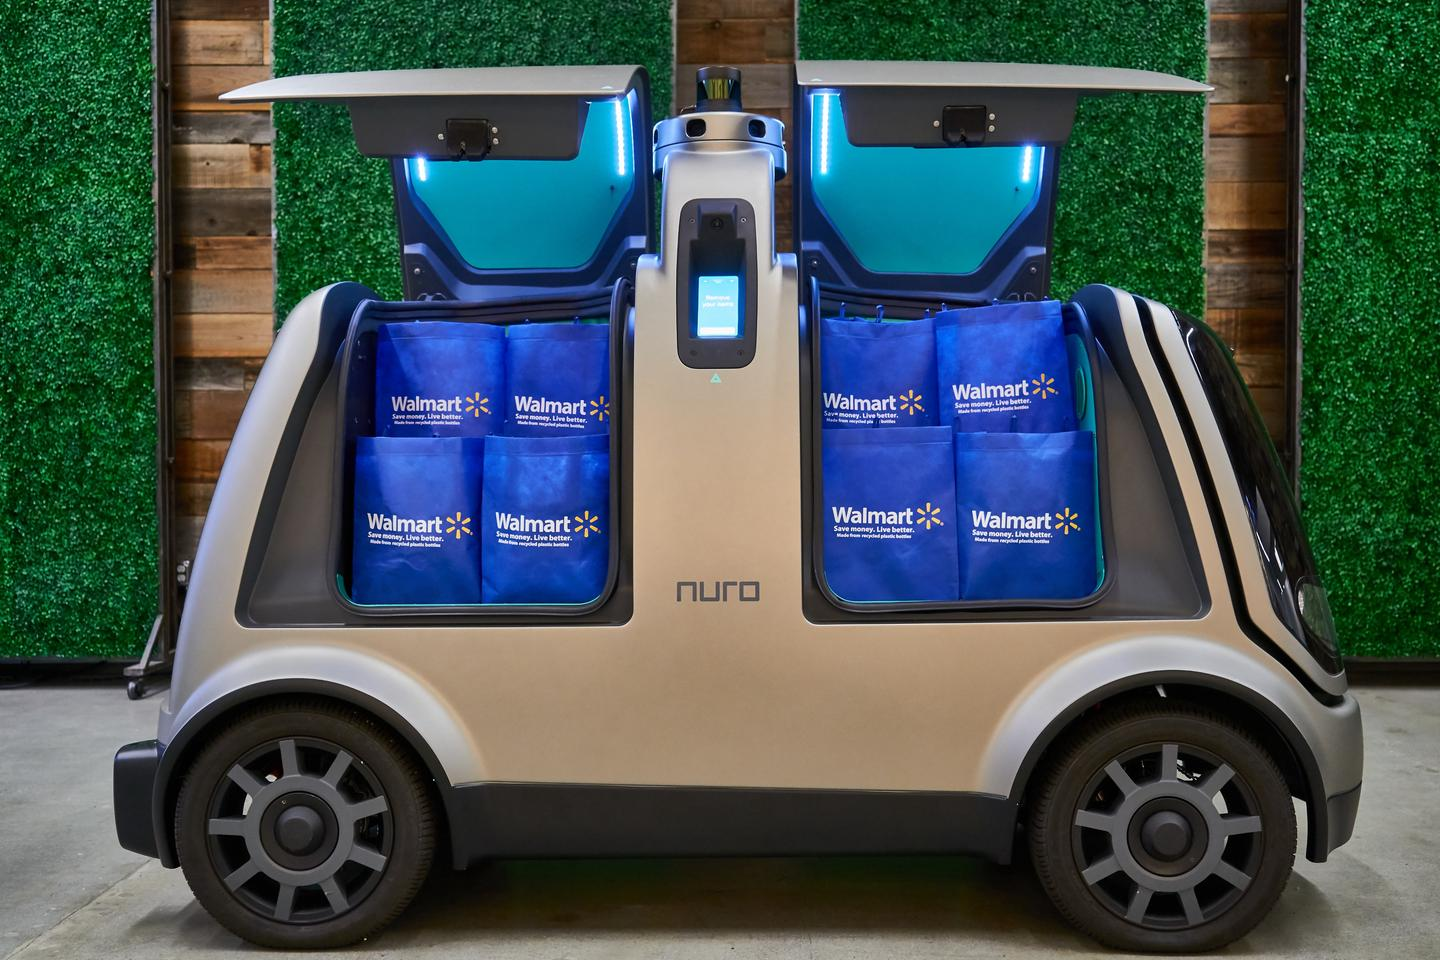 The opt-in autonomous grocery delivery trial for Walmart customers will start in the coming months